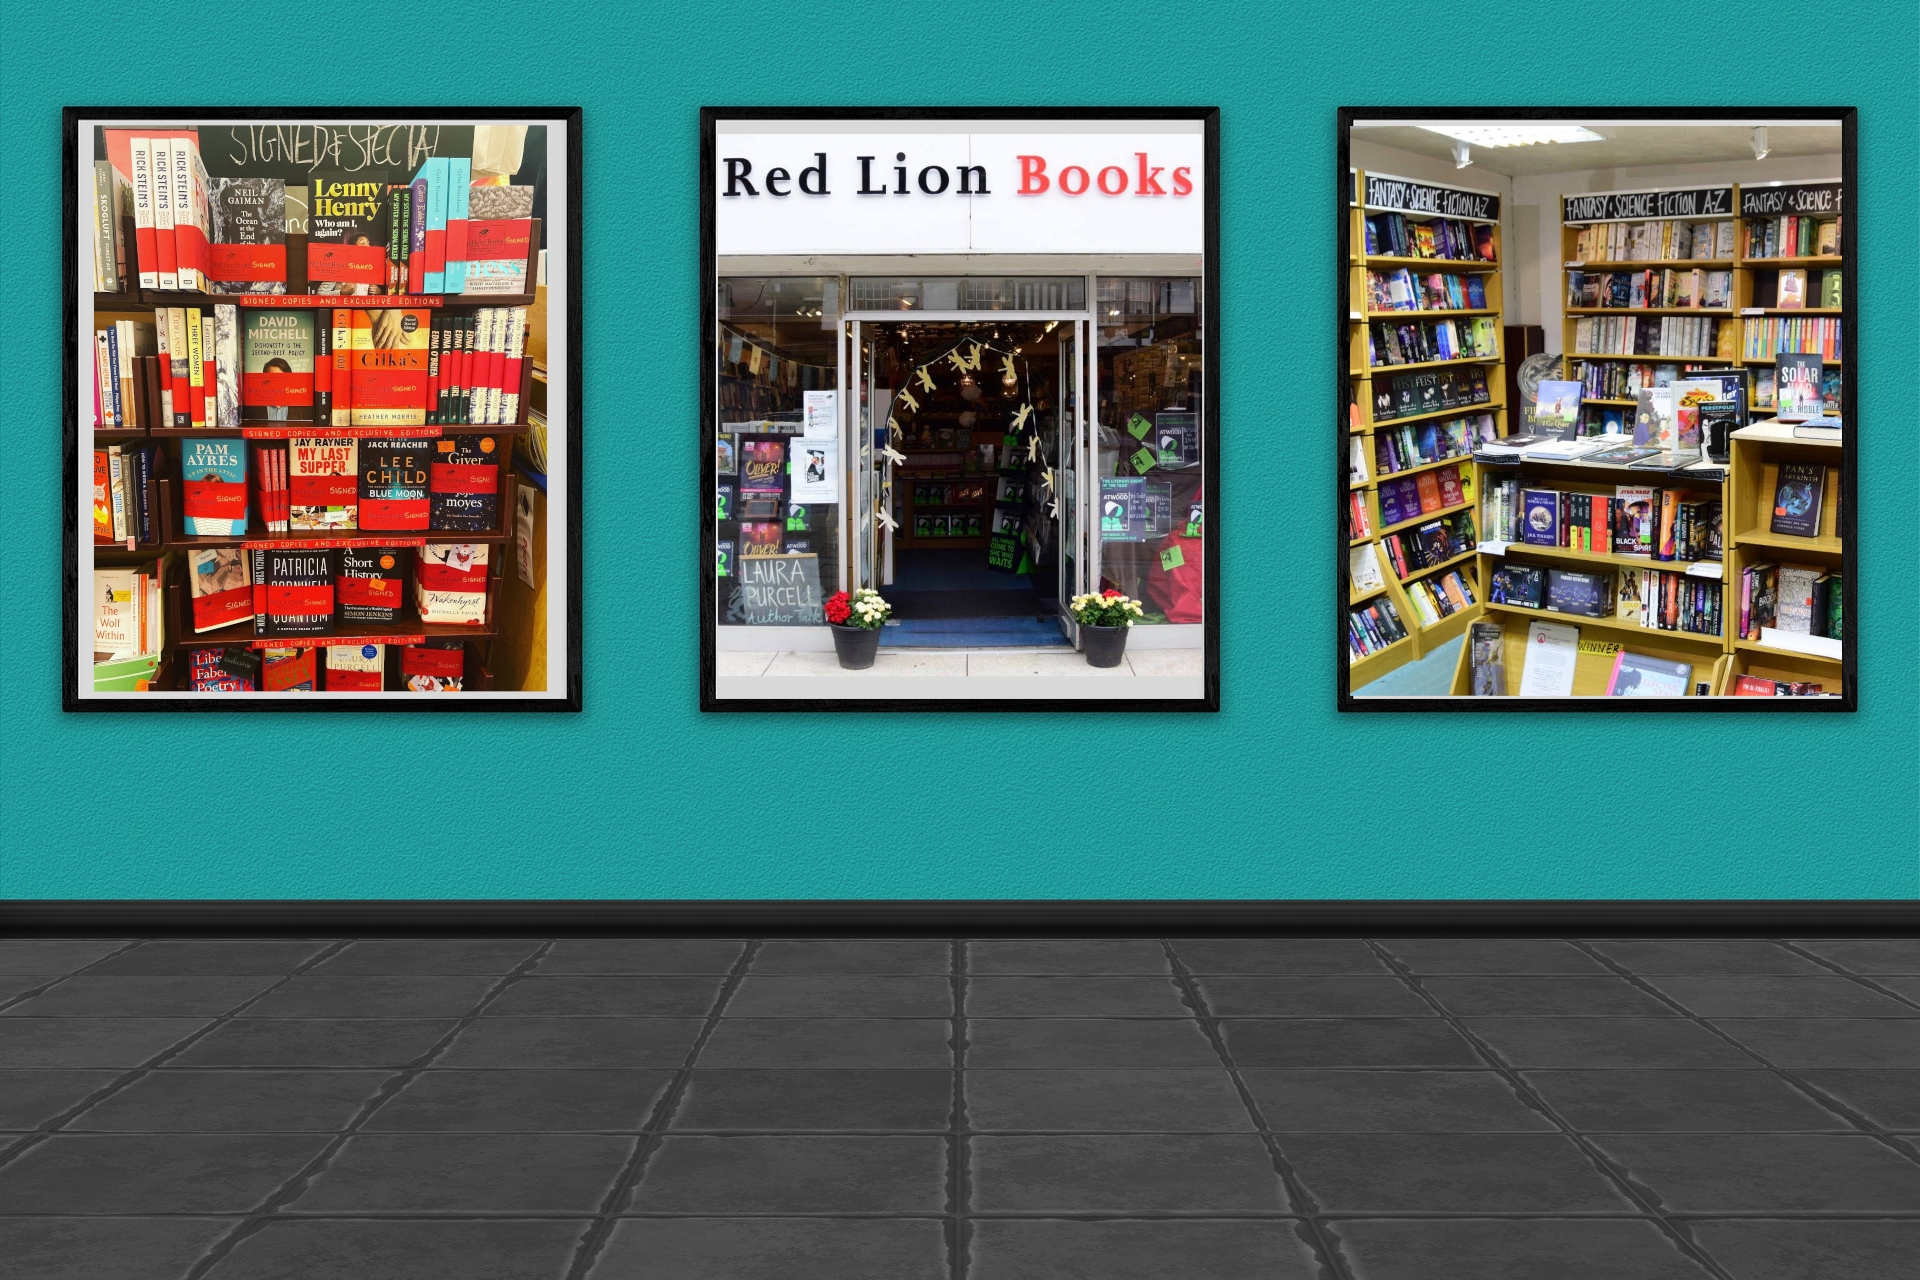 LoveReading Bookshop of the Month: Red Lion Books